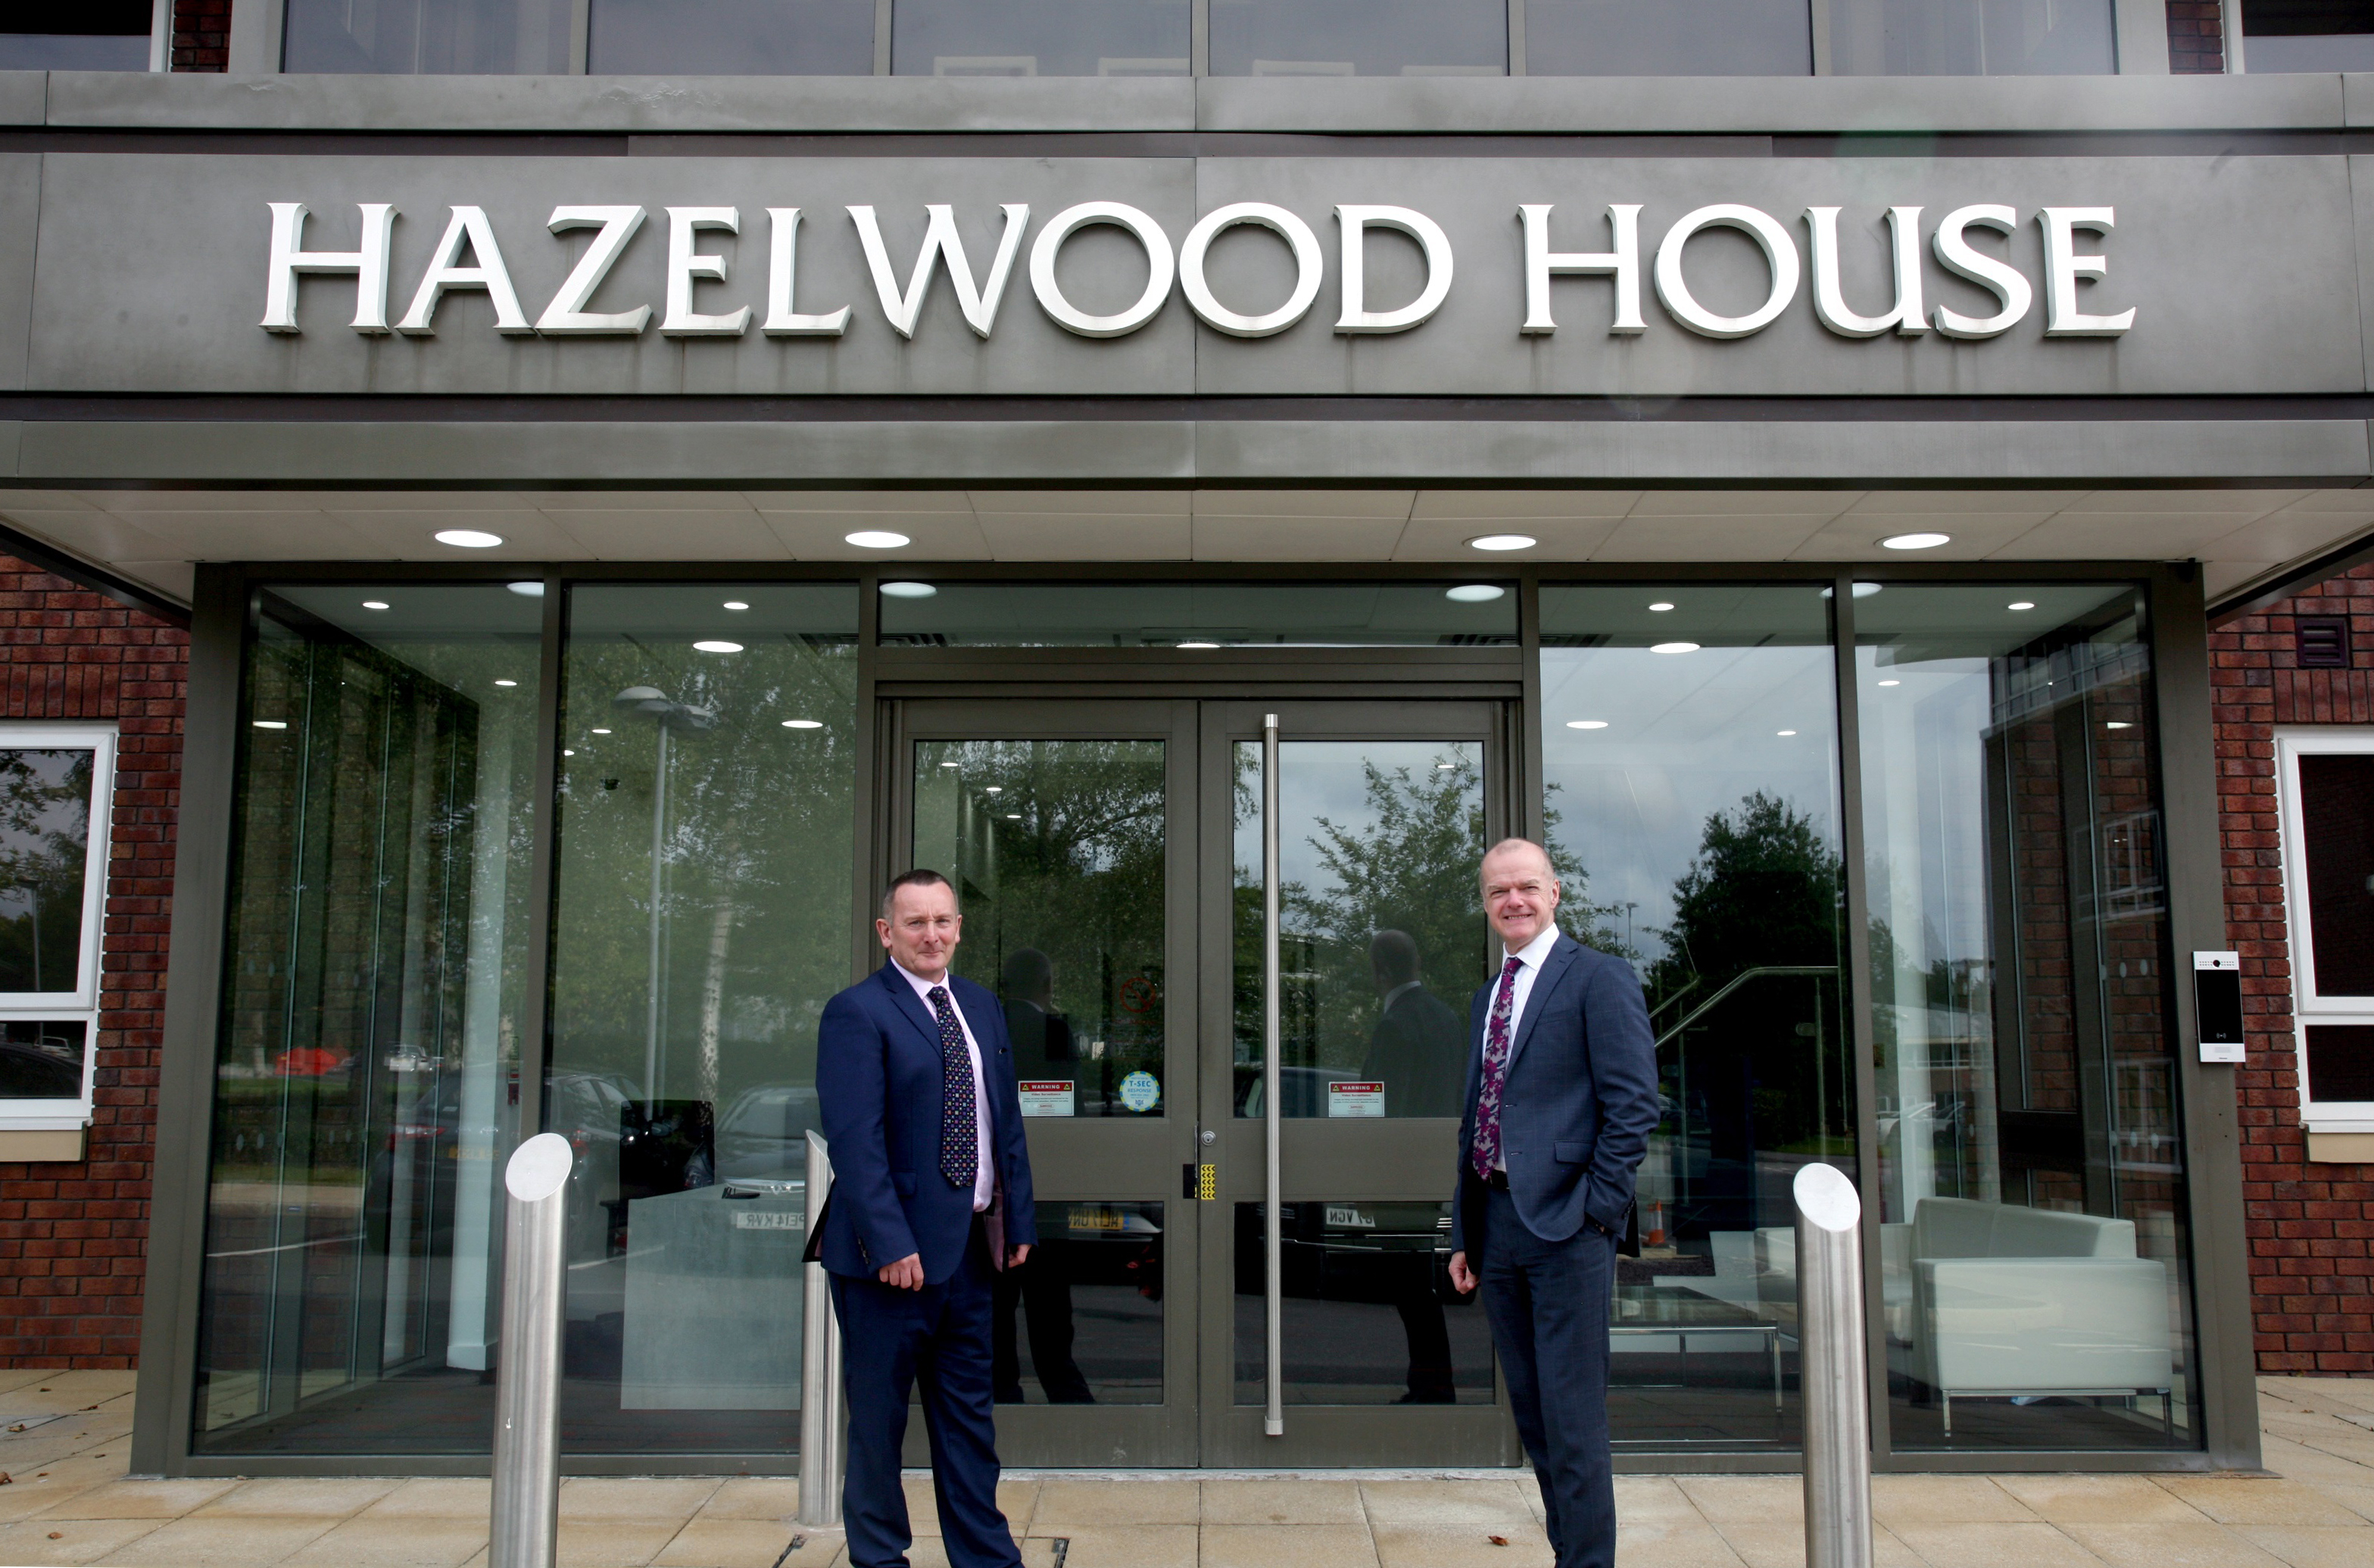 GLOBAL RESEARCH GROUP MOVES INTO GRADE A WORKSPACE IN MACCLESFIELD